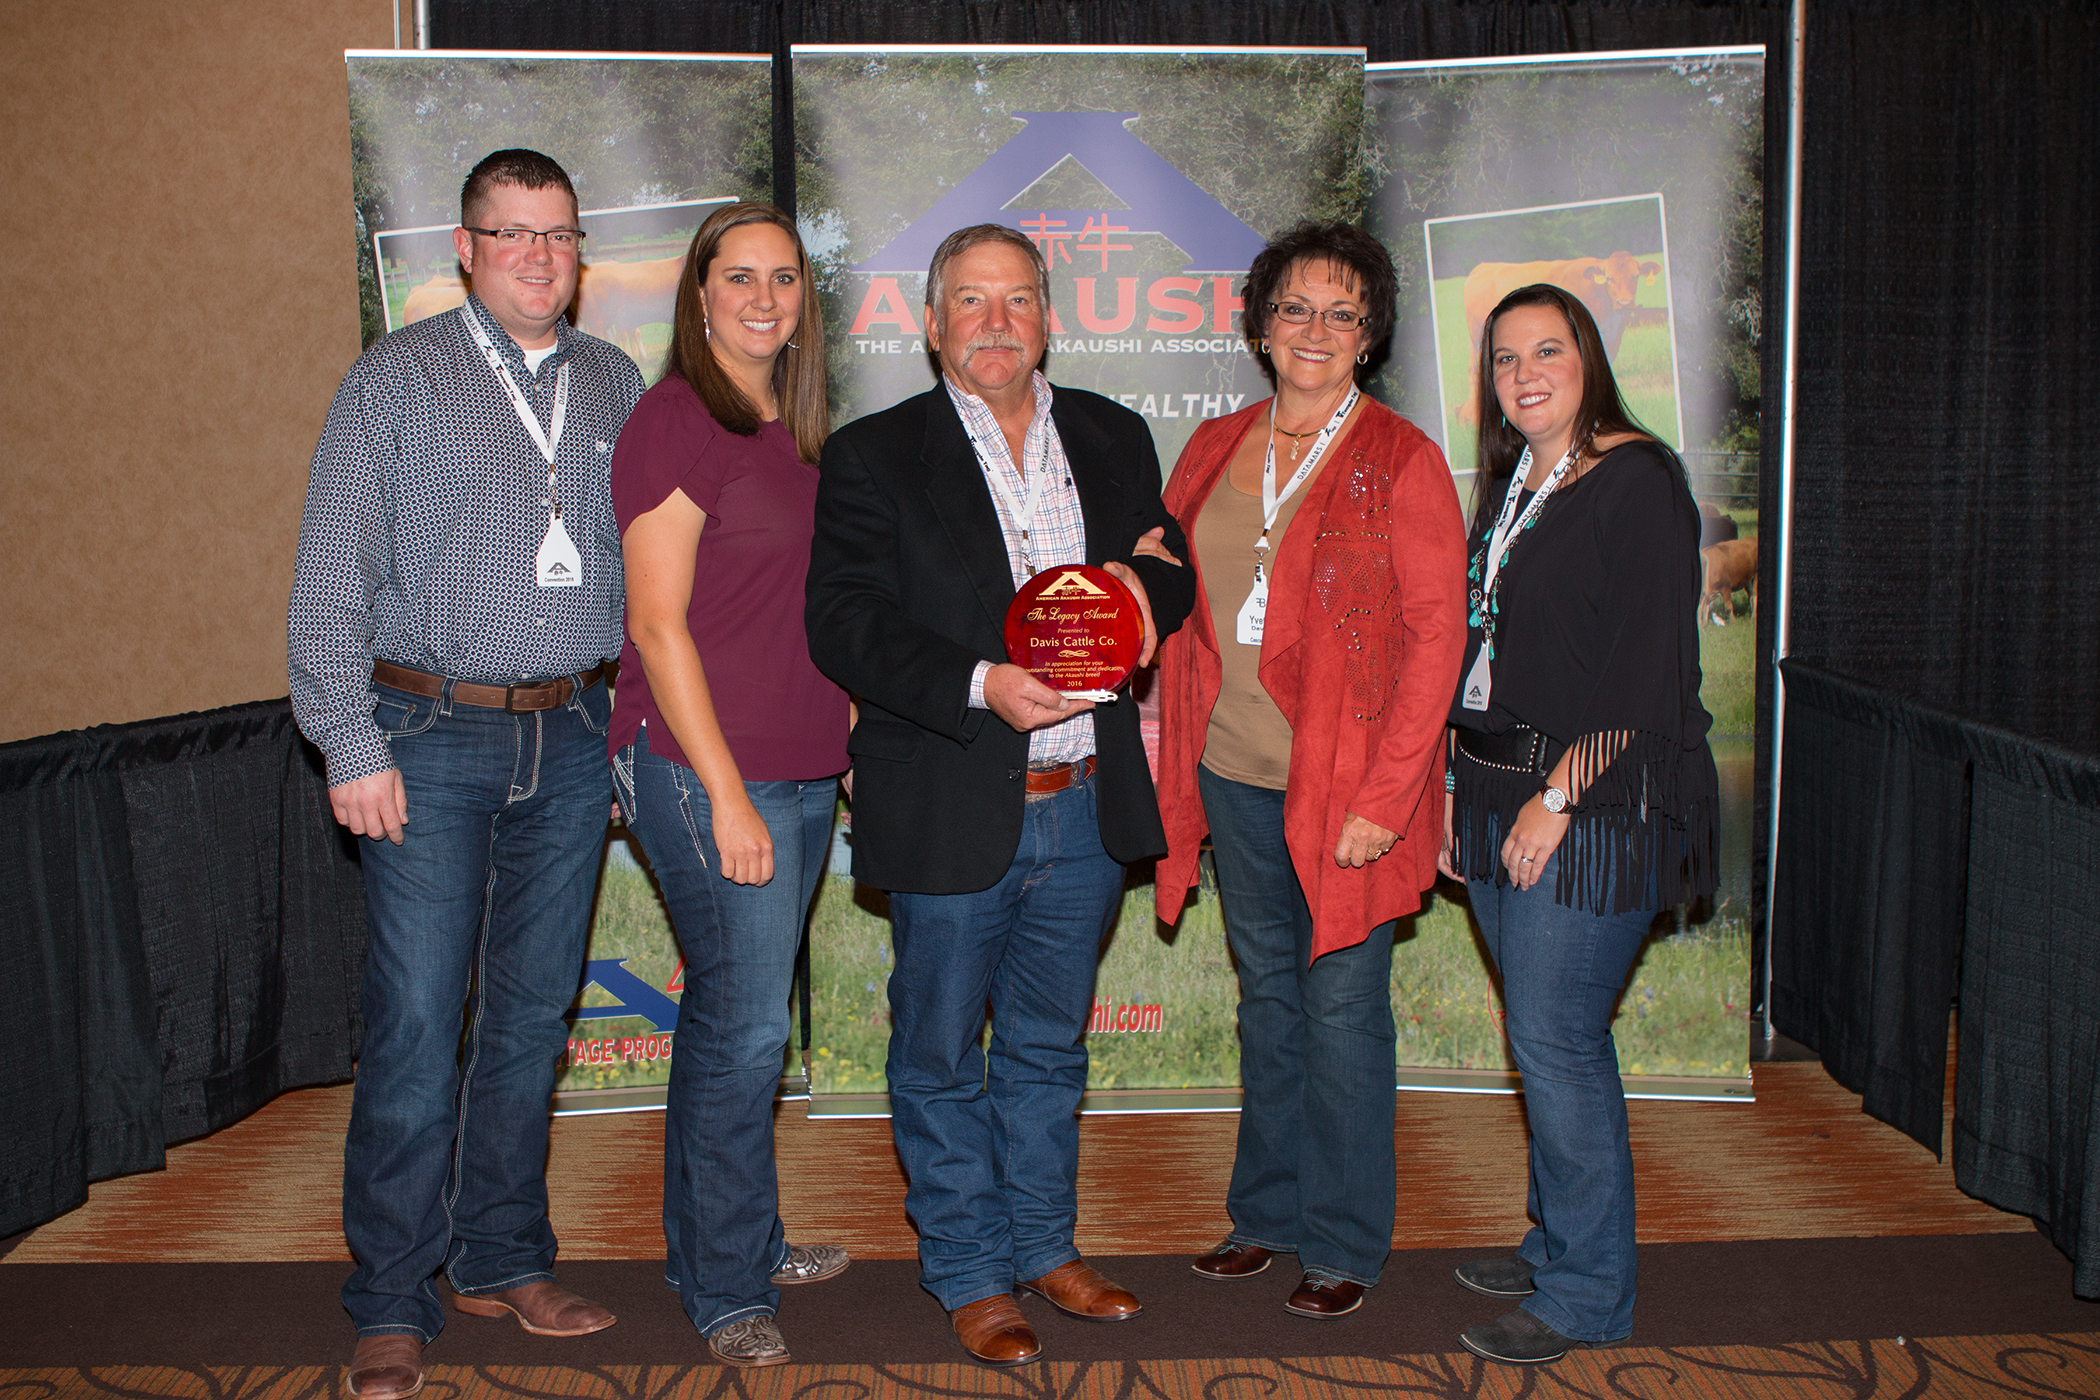 """Phil Davis and family of Davis Cattle Company - Bar O Ranch, Cascade, Idaho were presented The American Akaushi Association """"Securing The Legacy Award"""" at their recent convention in Lubbock, Texas. This award is presented annually to the individual, family or ranch, that has provided key leadership and marketing efforts for the American Akaushi.    L to R: Will Caldwell, Katlin Davis, Phil And Yvette Davis, Sarah Davis Swain"""